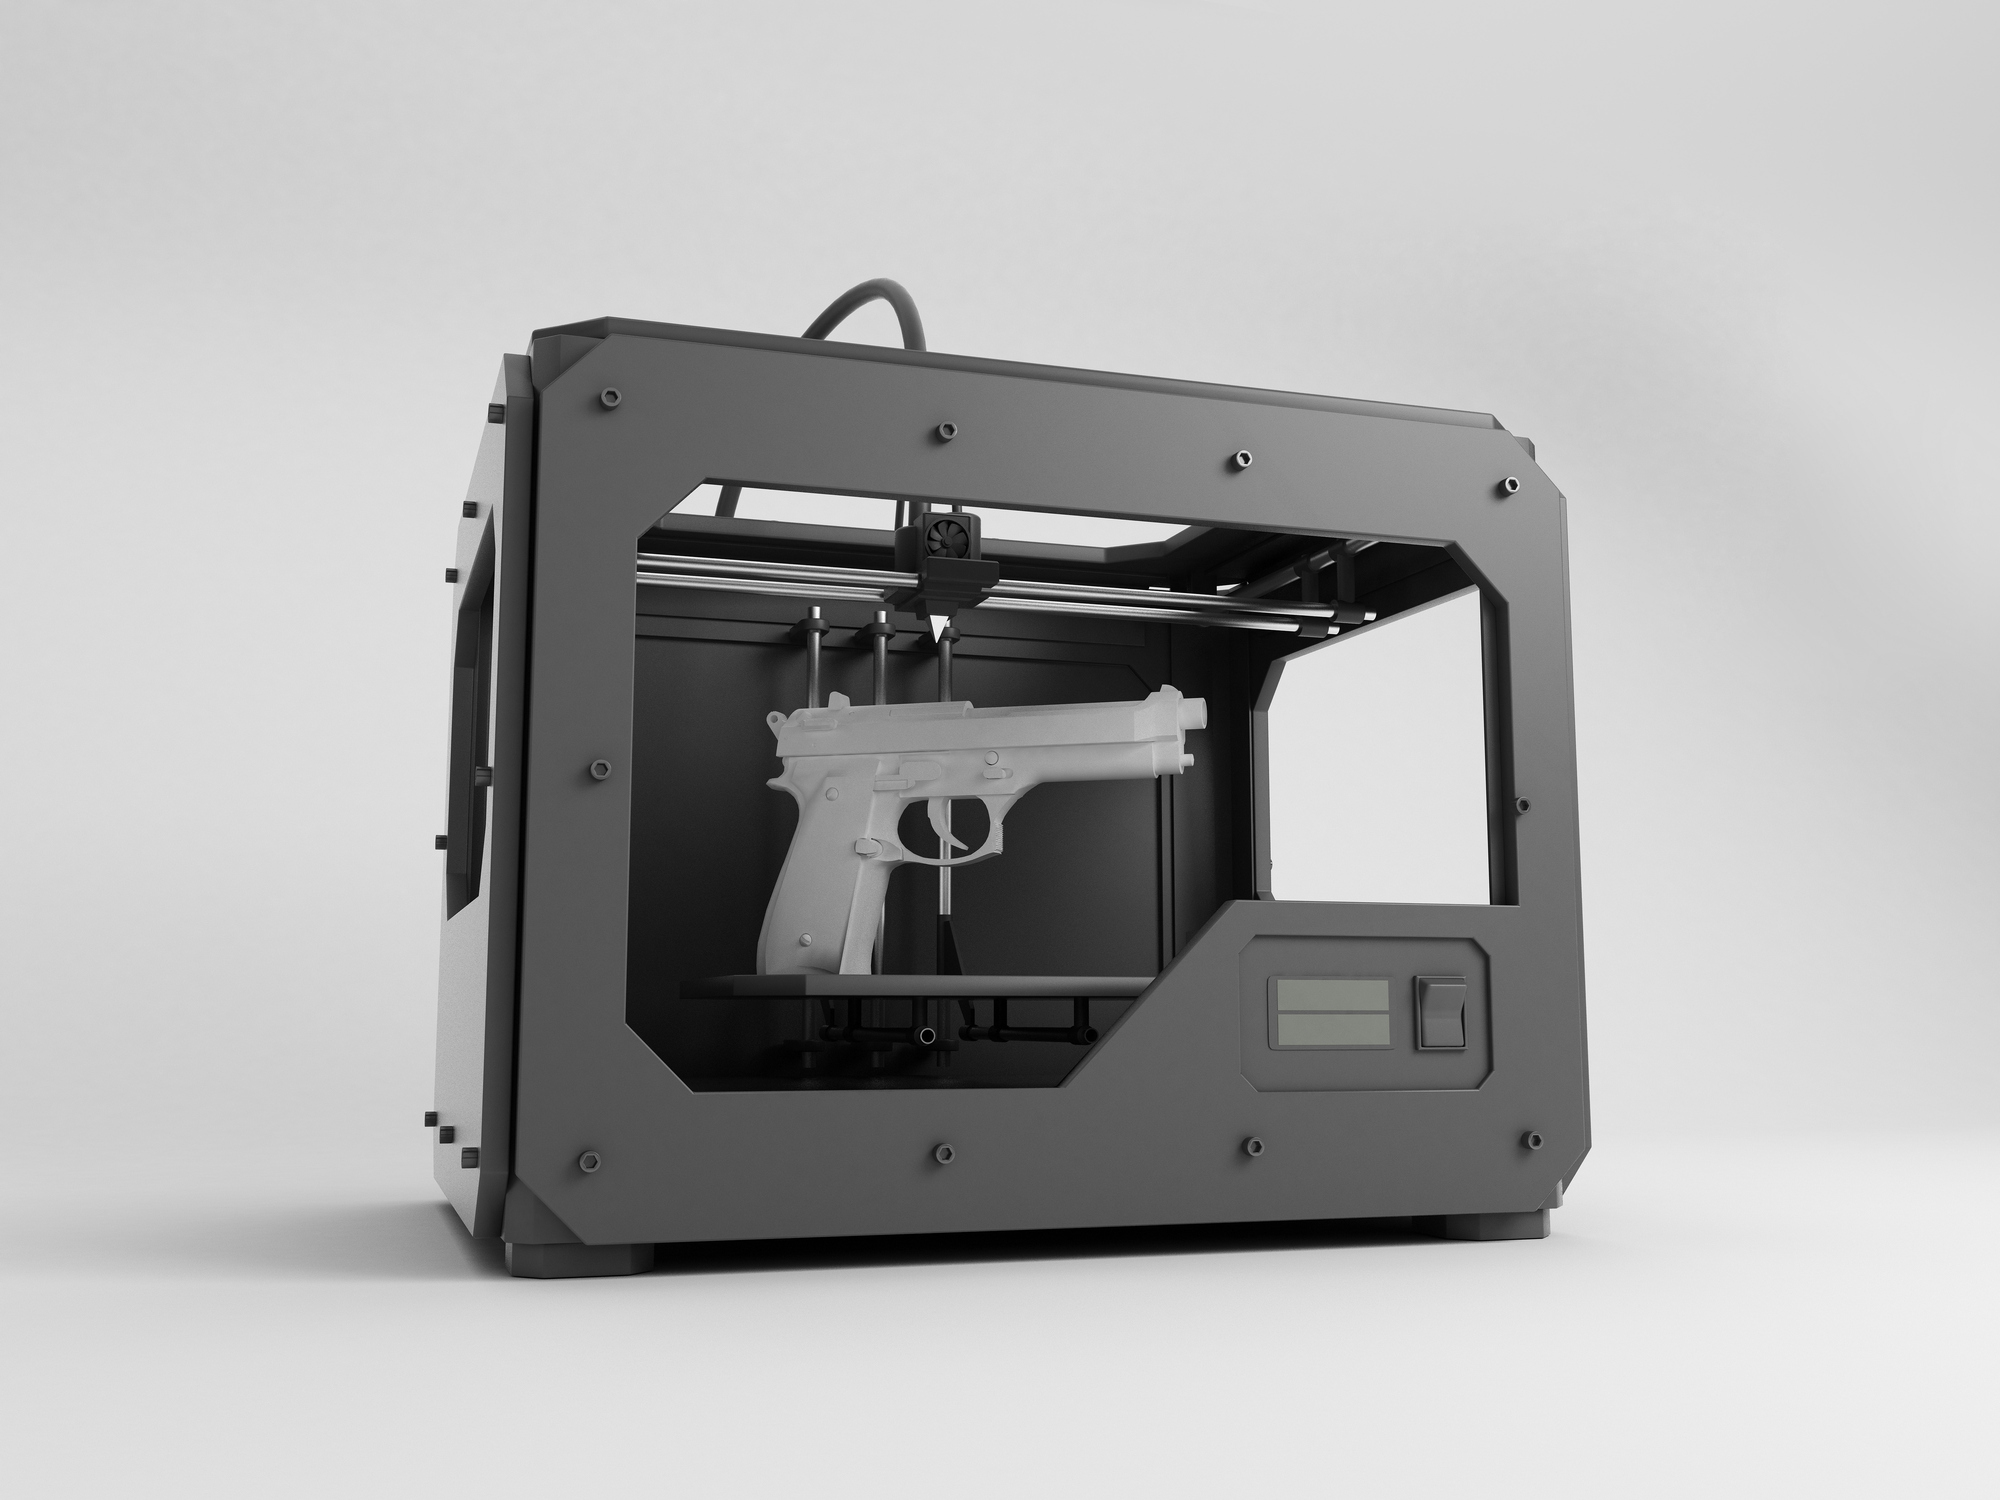 techcrunch.com - Jon Stokes - 3D printed guns are now legal… What's next?